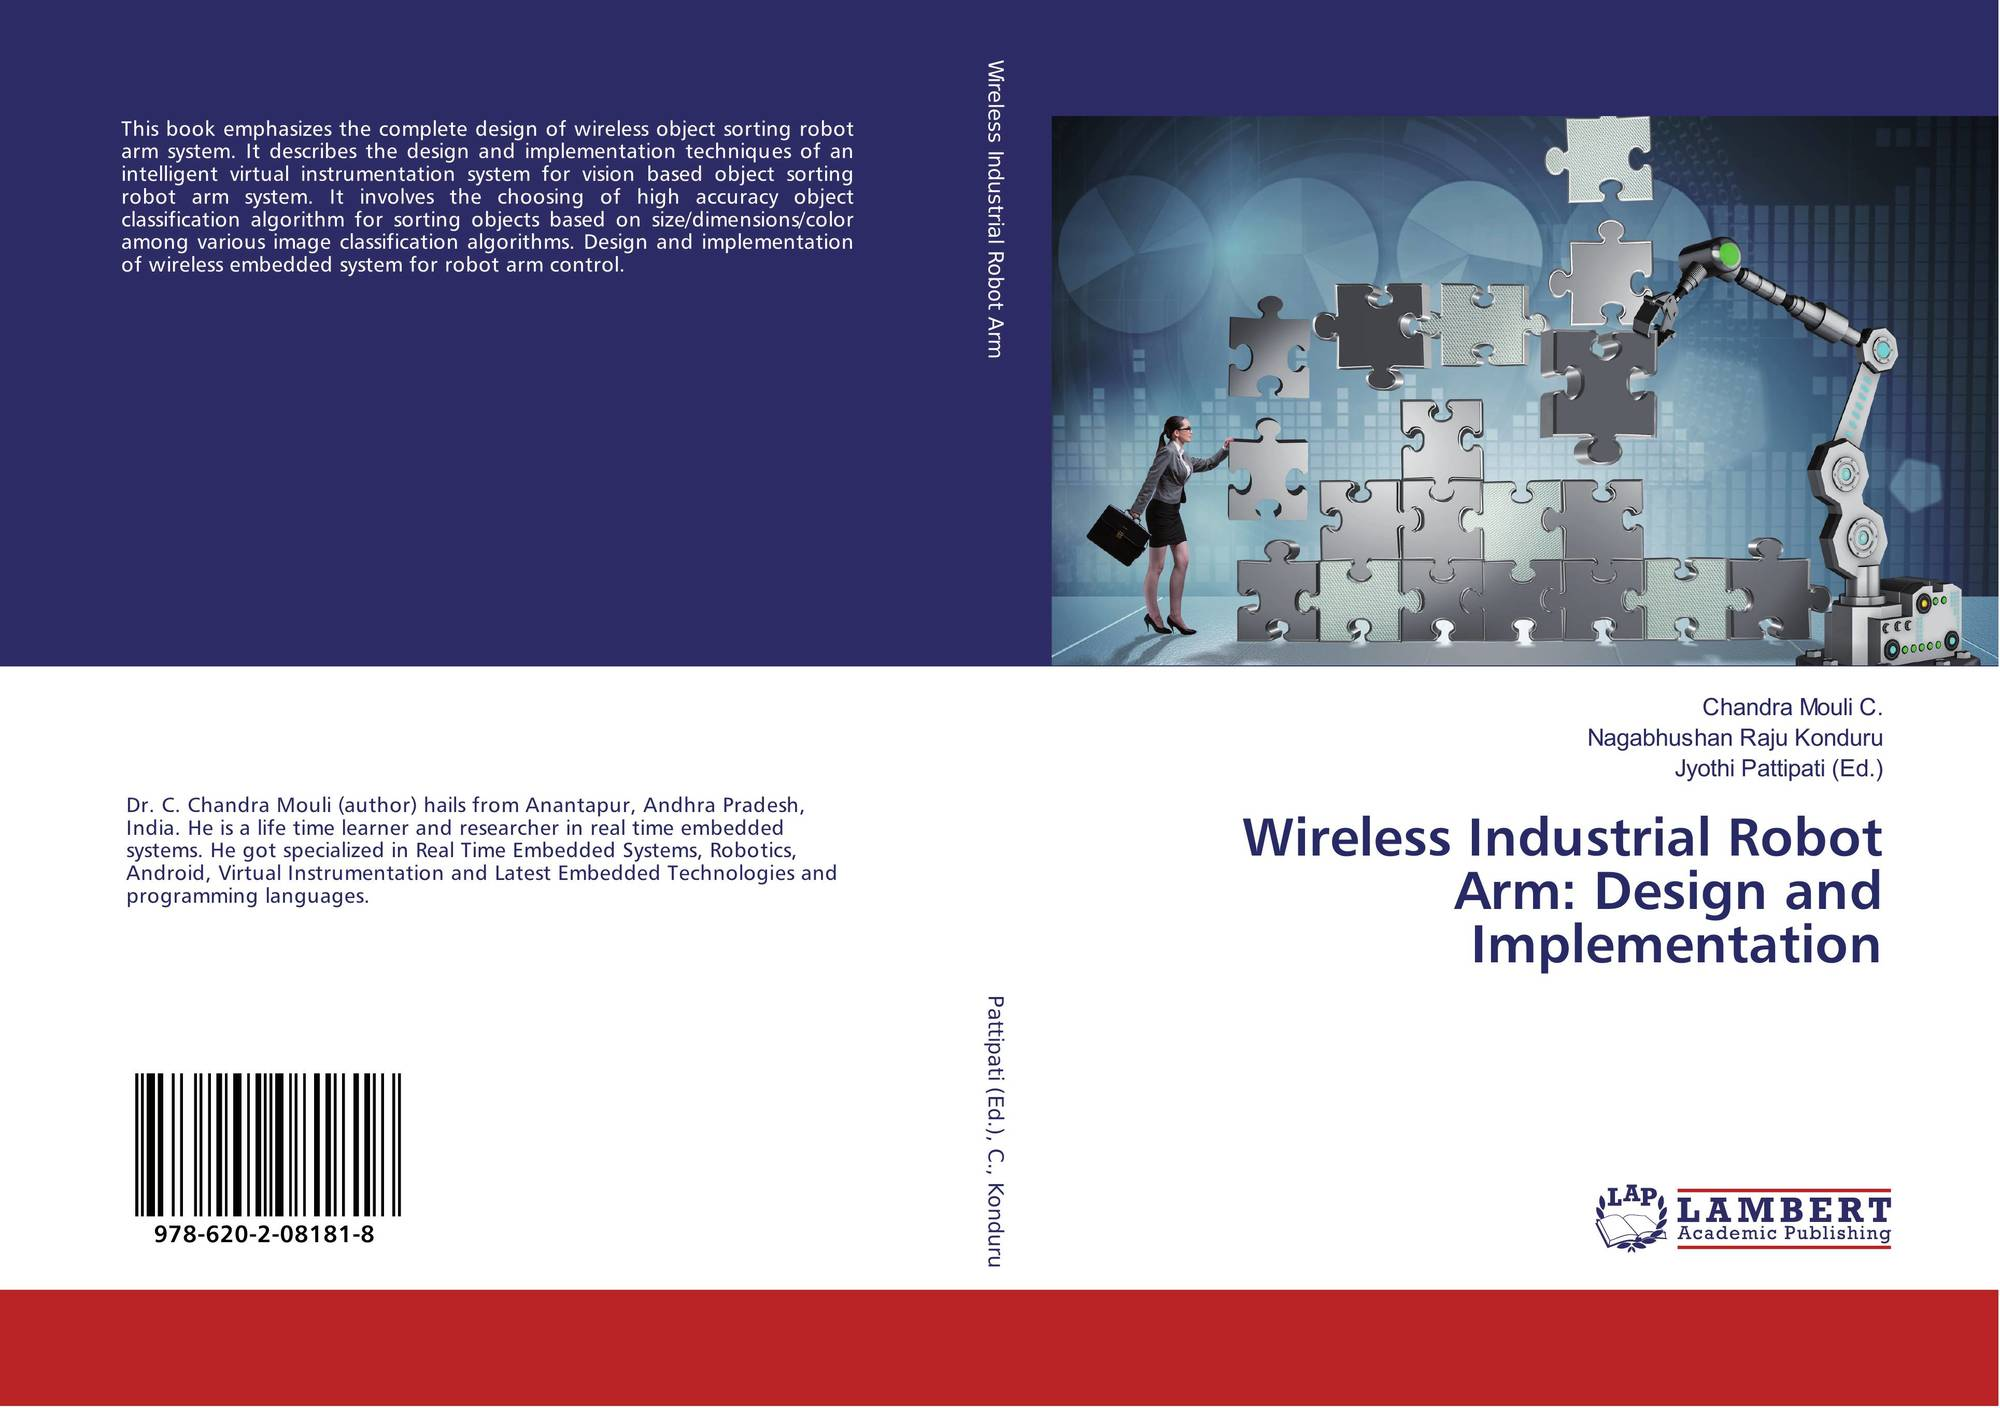 Wireless Industrial Robot Arm: Design and Implementation, 978-620-2